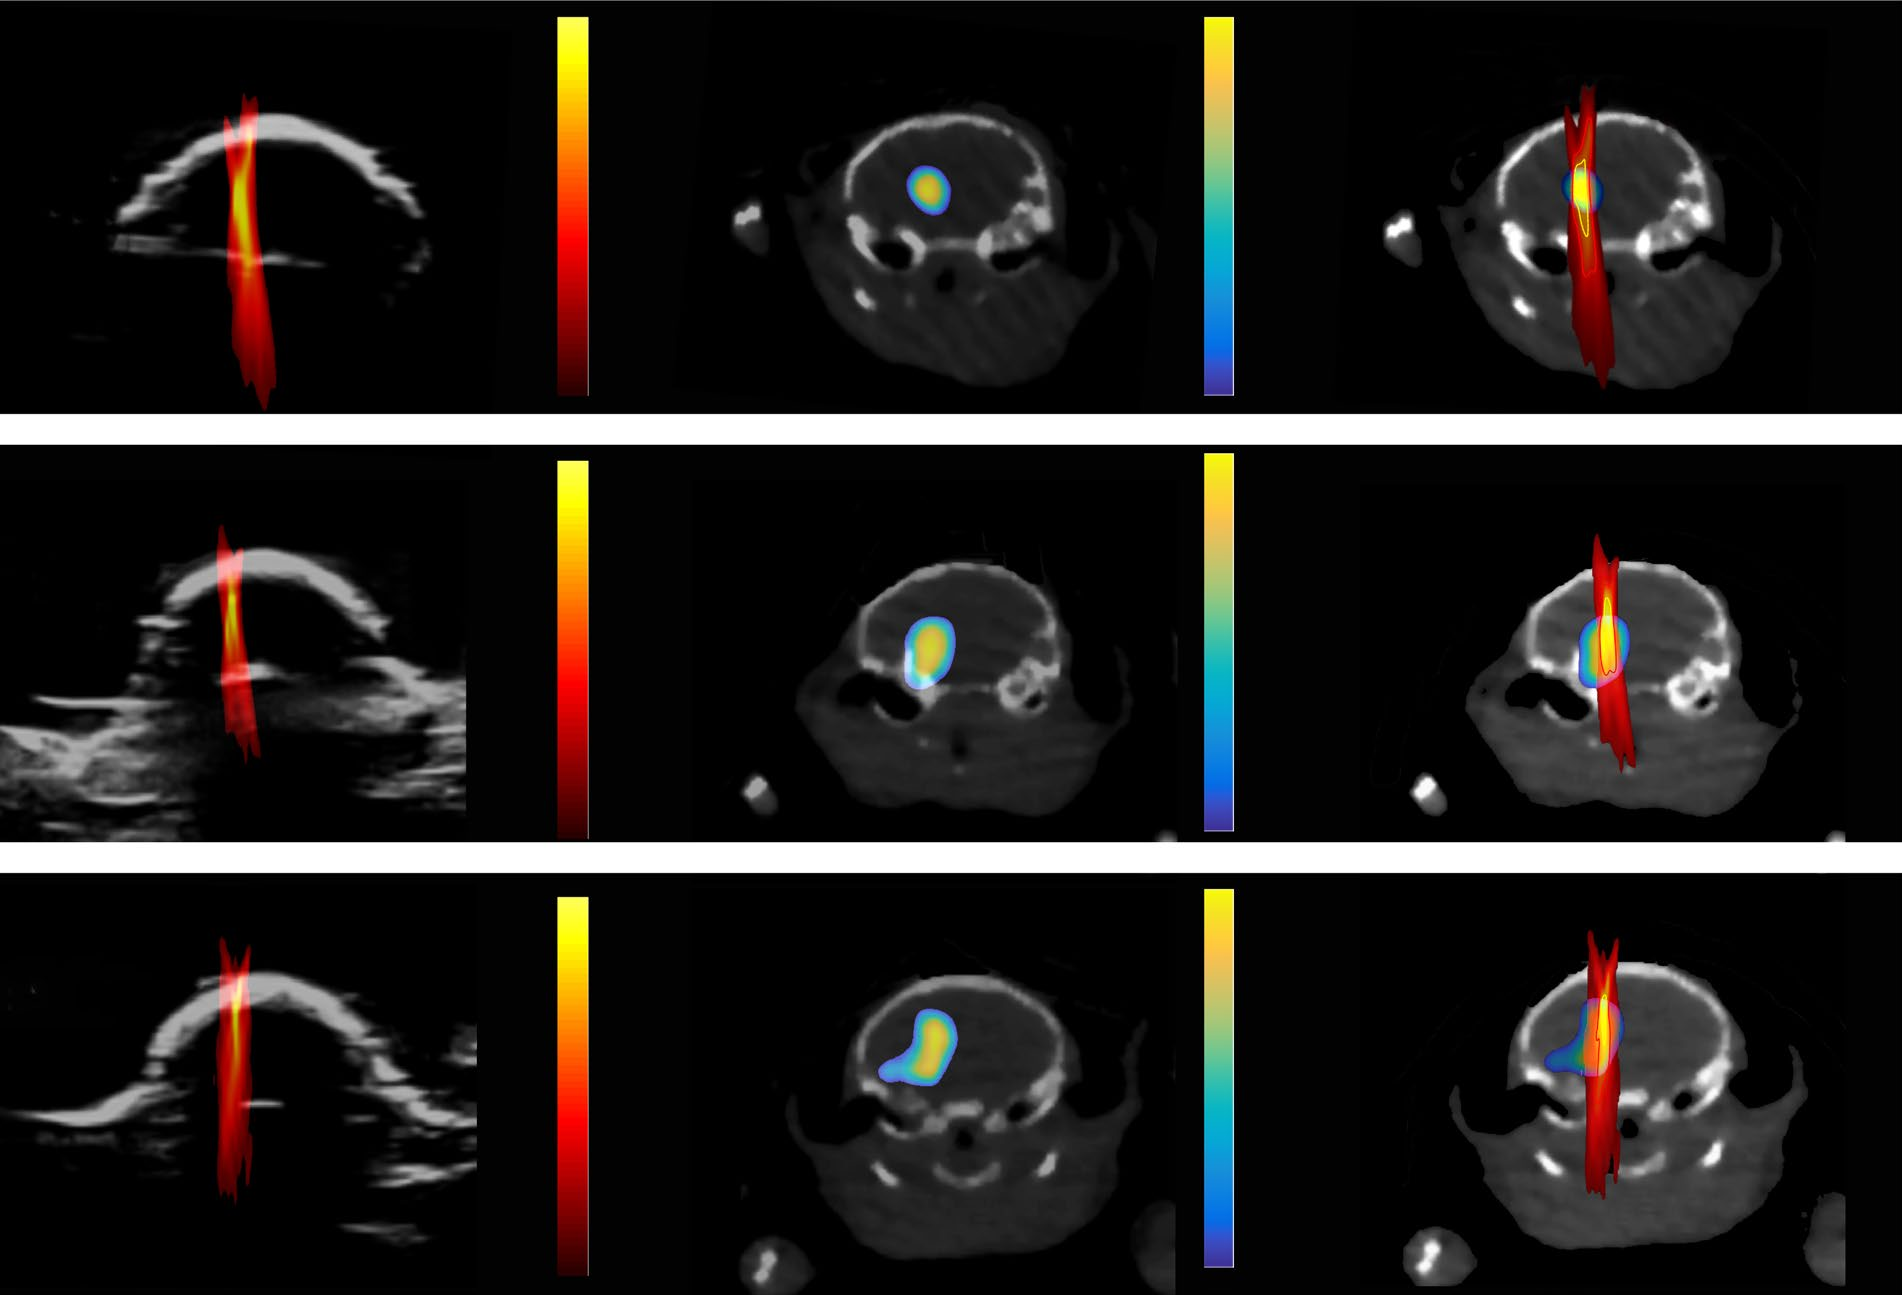 PCI images compared to PET/CT images showing location and dose of drug in a mouse brain